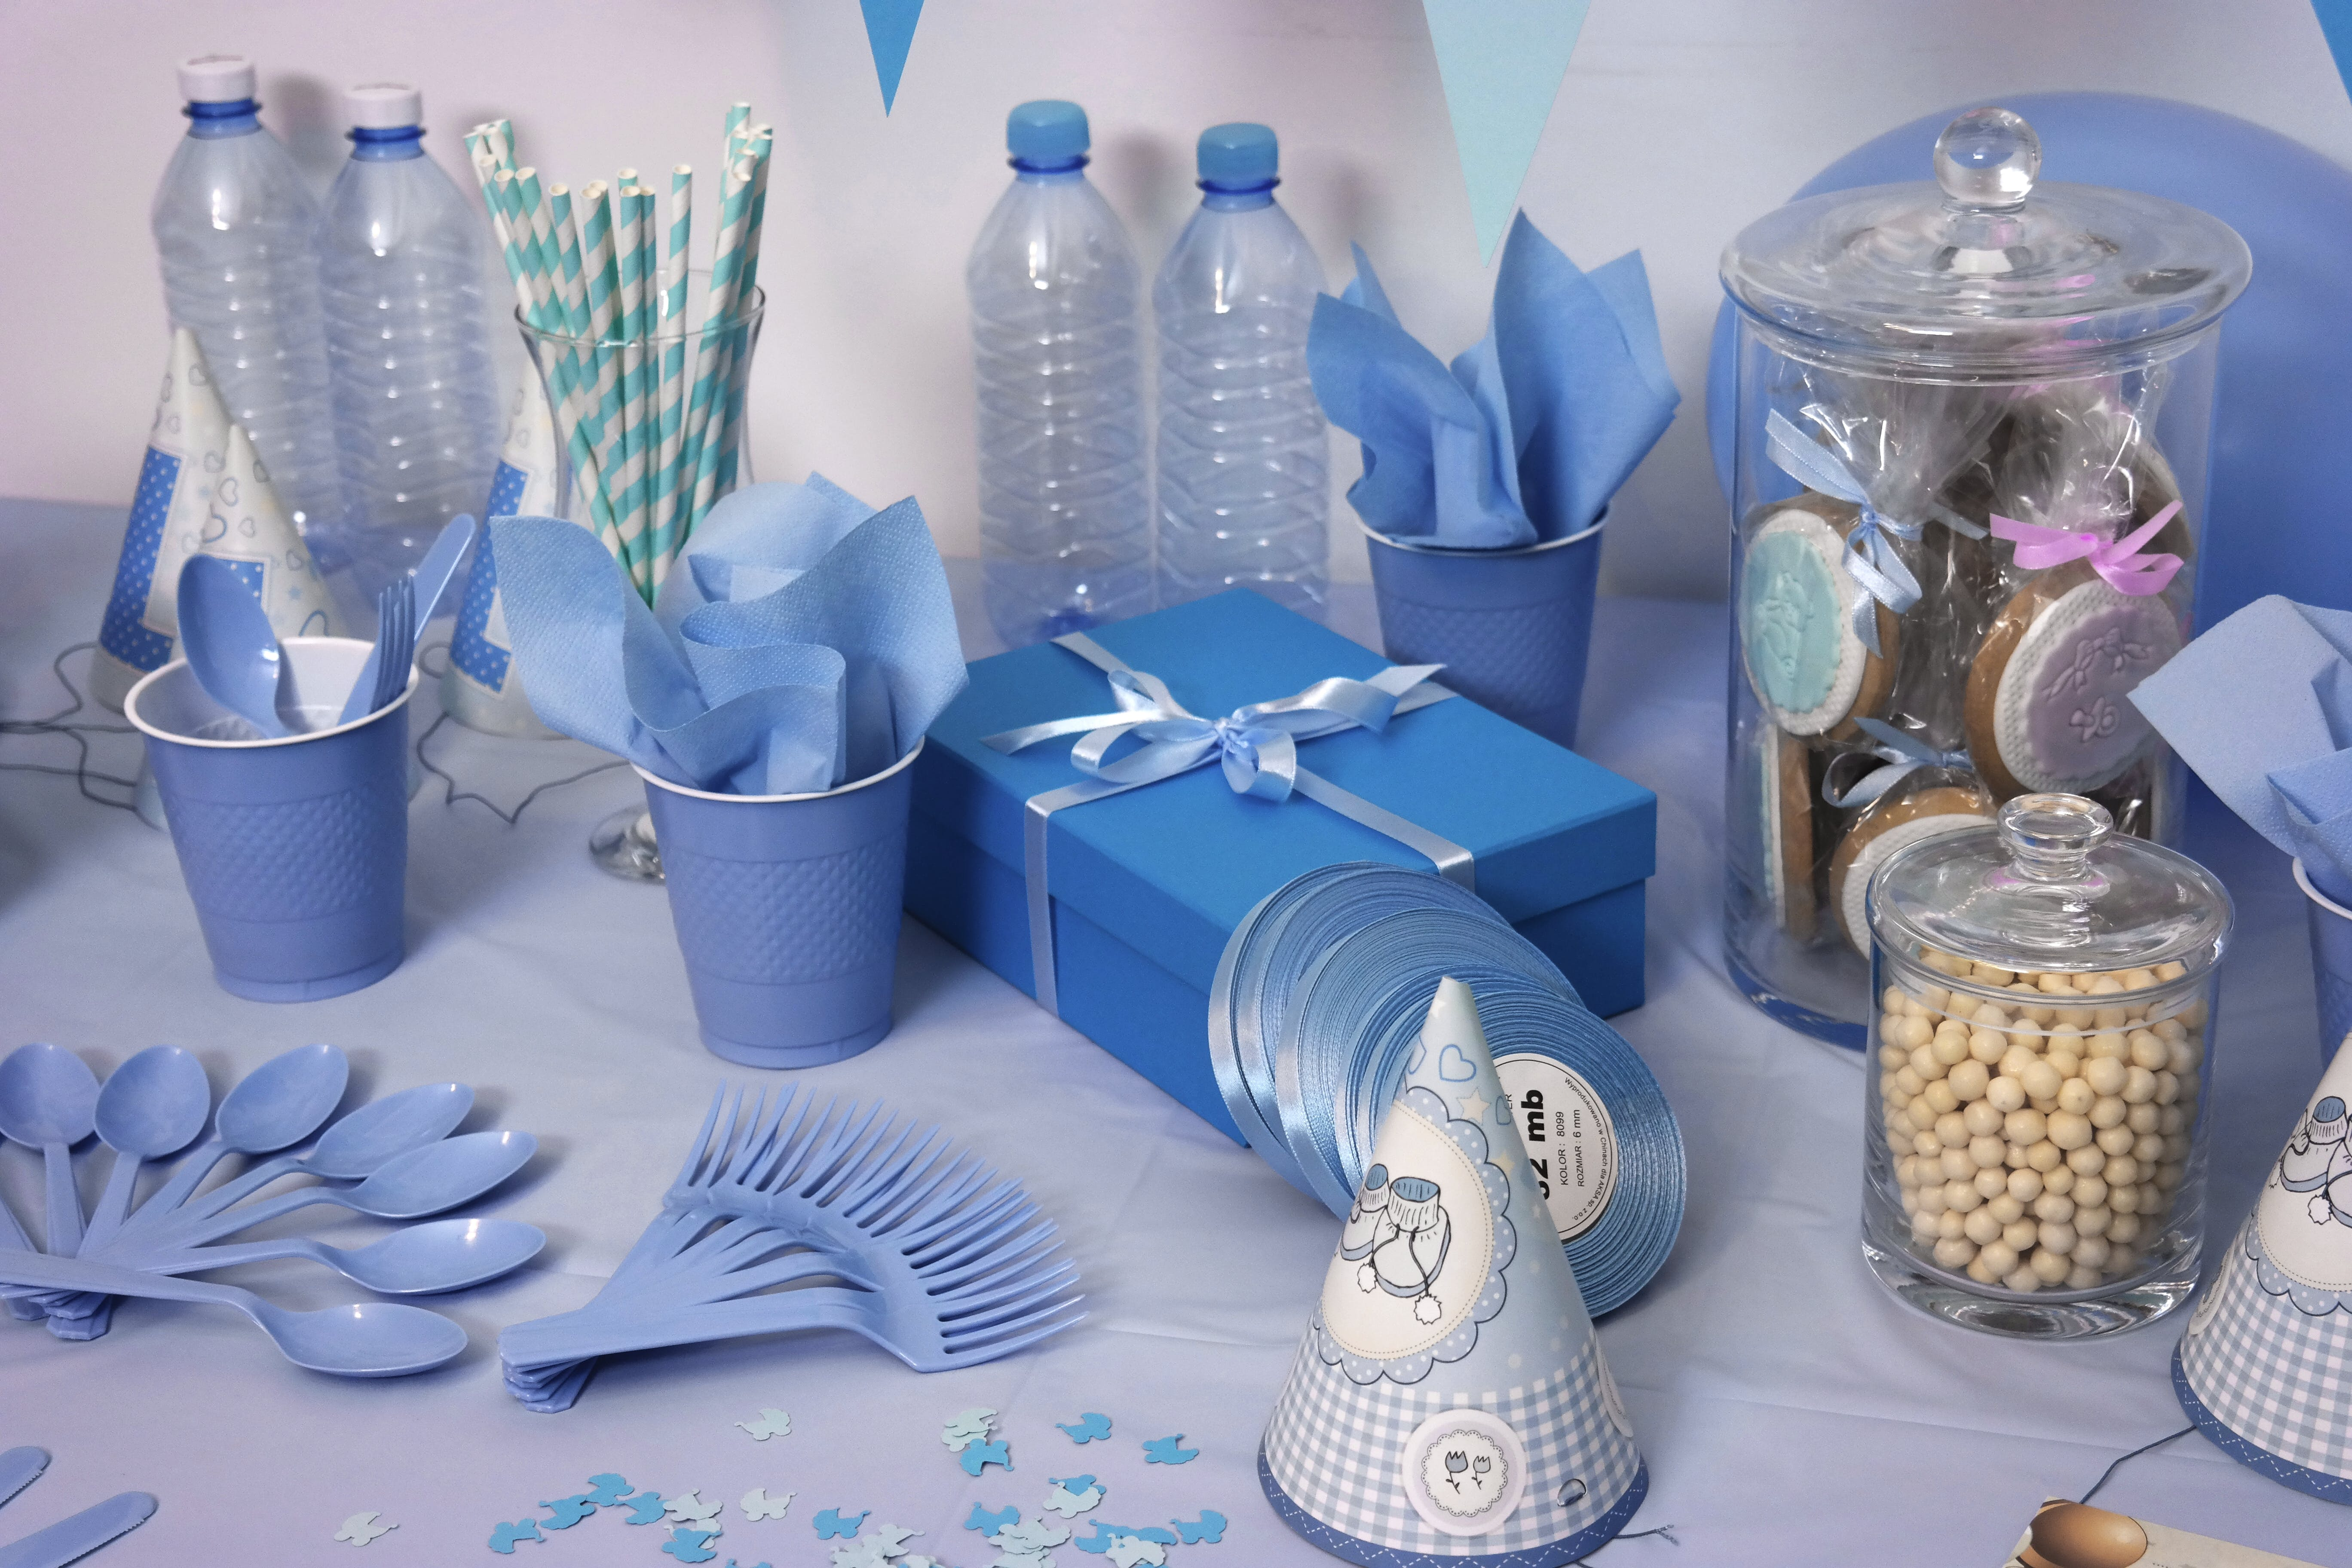 Close-up Photo of Blue-and-white Dinnerware Set on Table